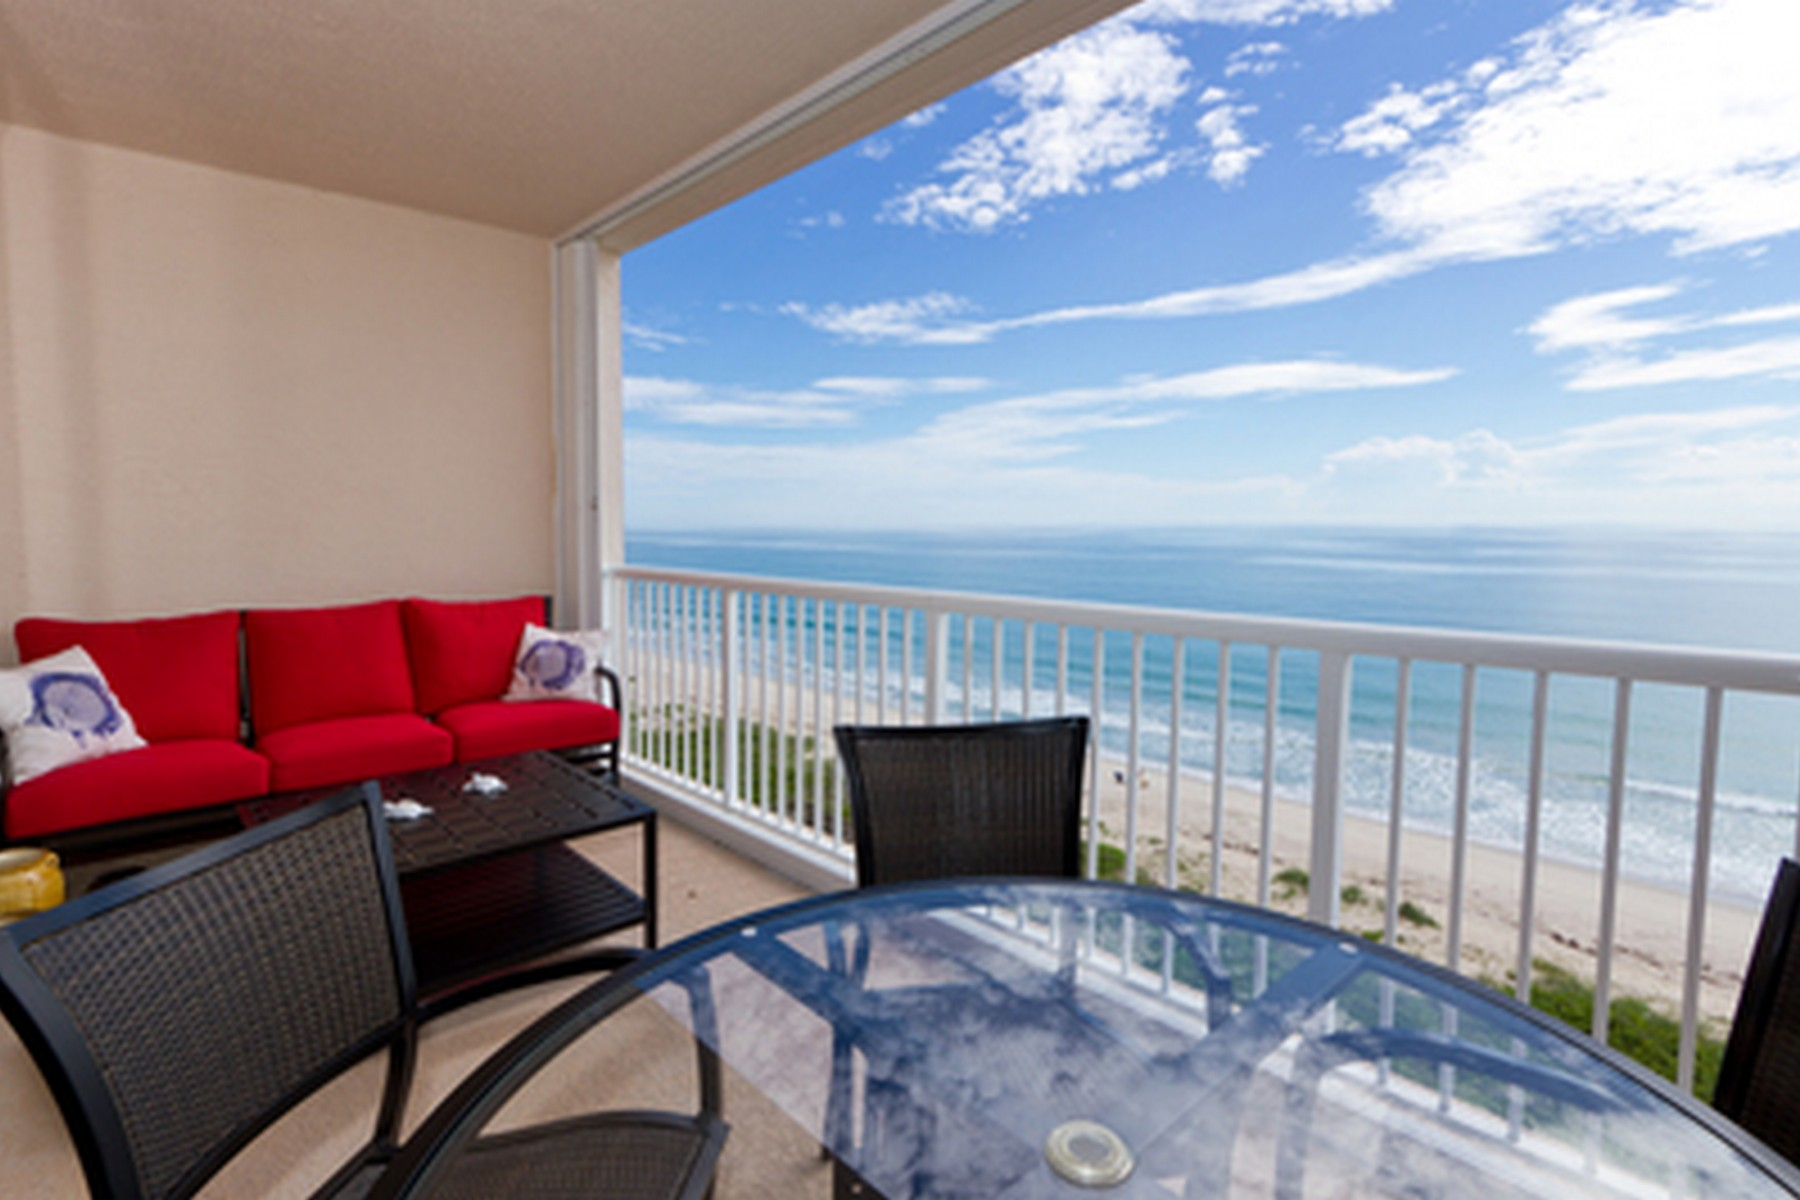 The Sky Touches the Sea of this Ninth Floor Oceanfront Condo! 4160 N Highway A1A #903A Hutchinson Island, Florida 34949 Amerika Birleşik Devletleri